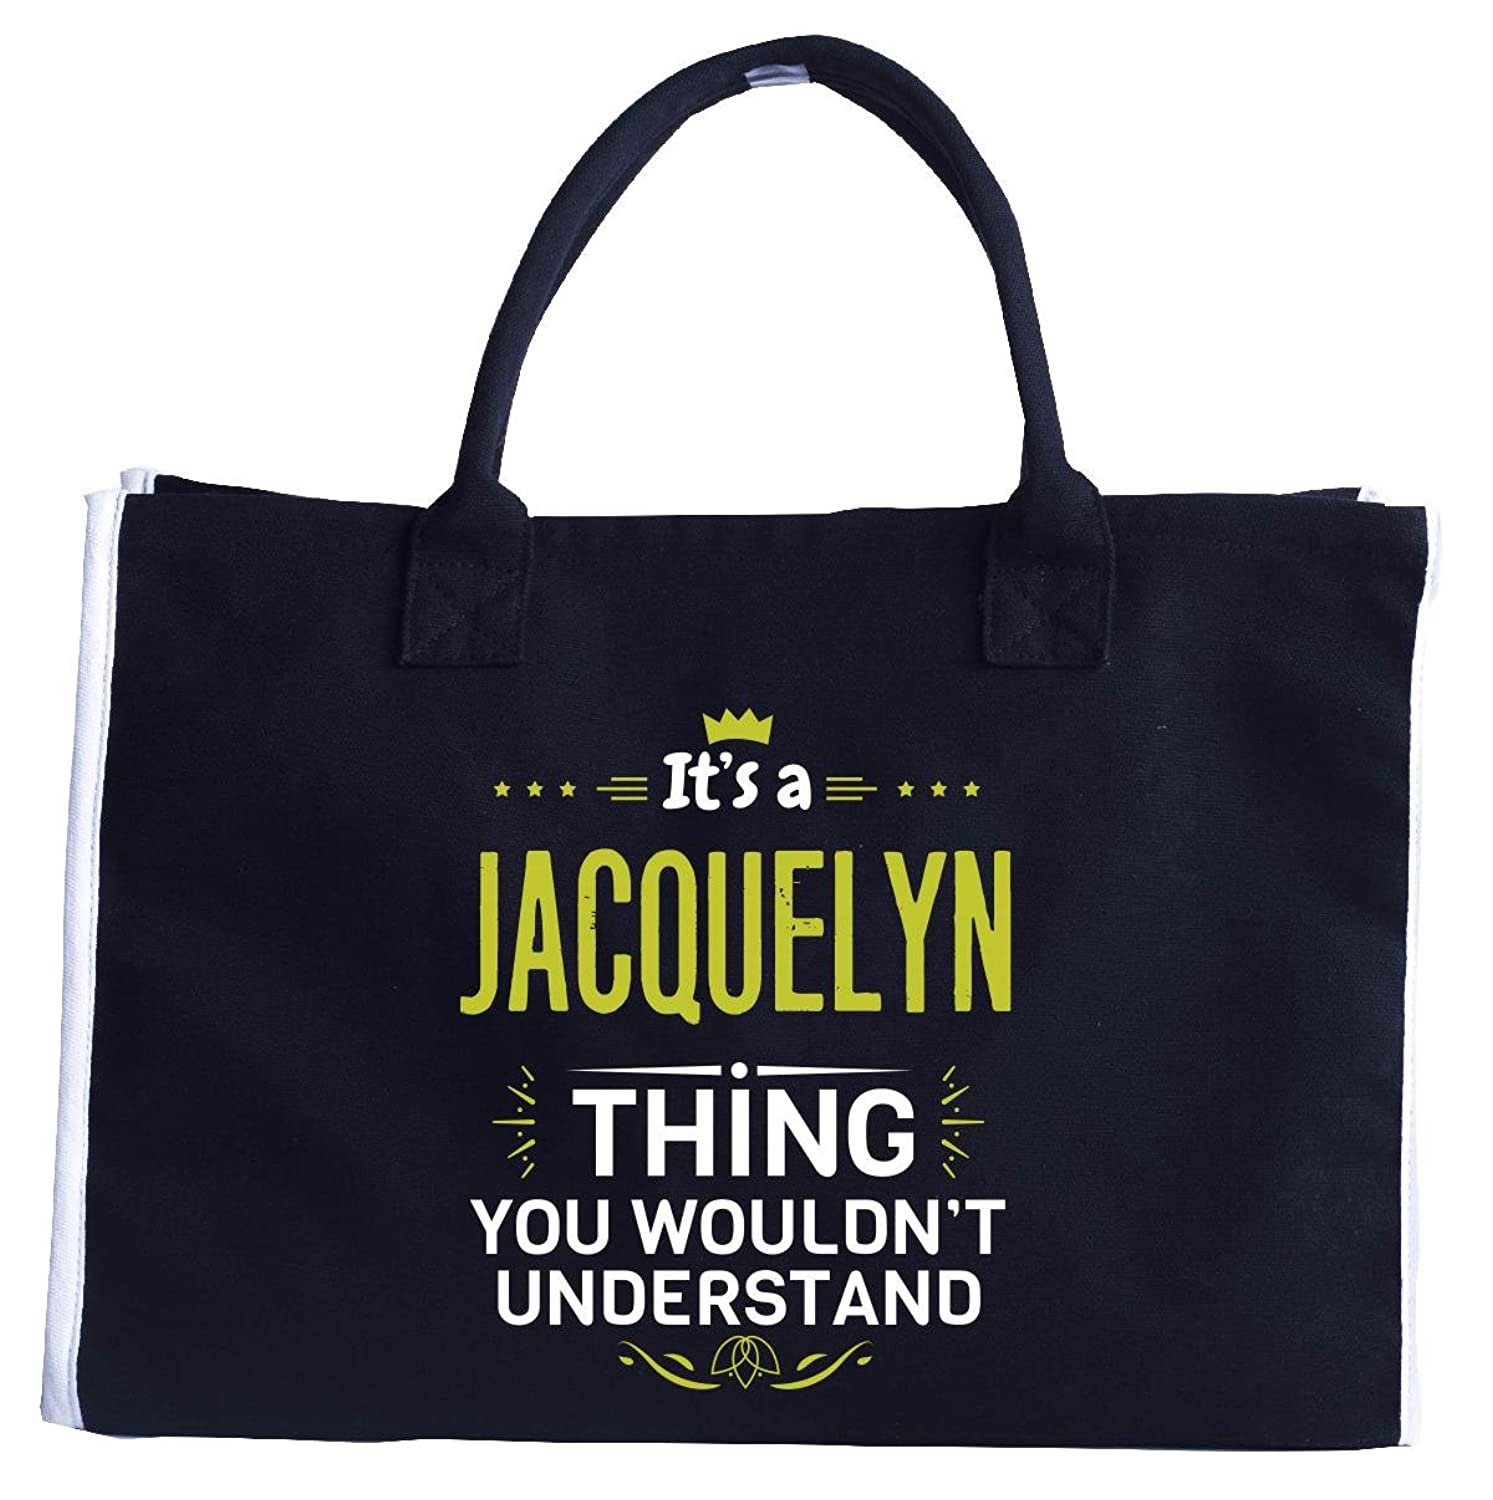 Its A Jacquelyn Thing You Wouldn T Understand - Tote Bag